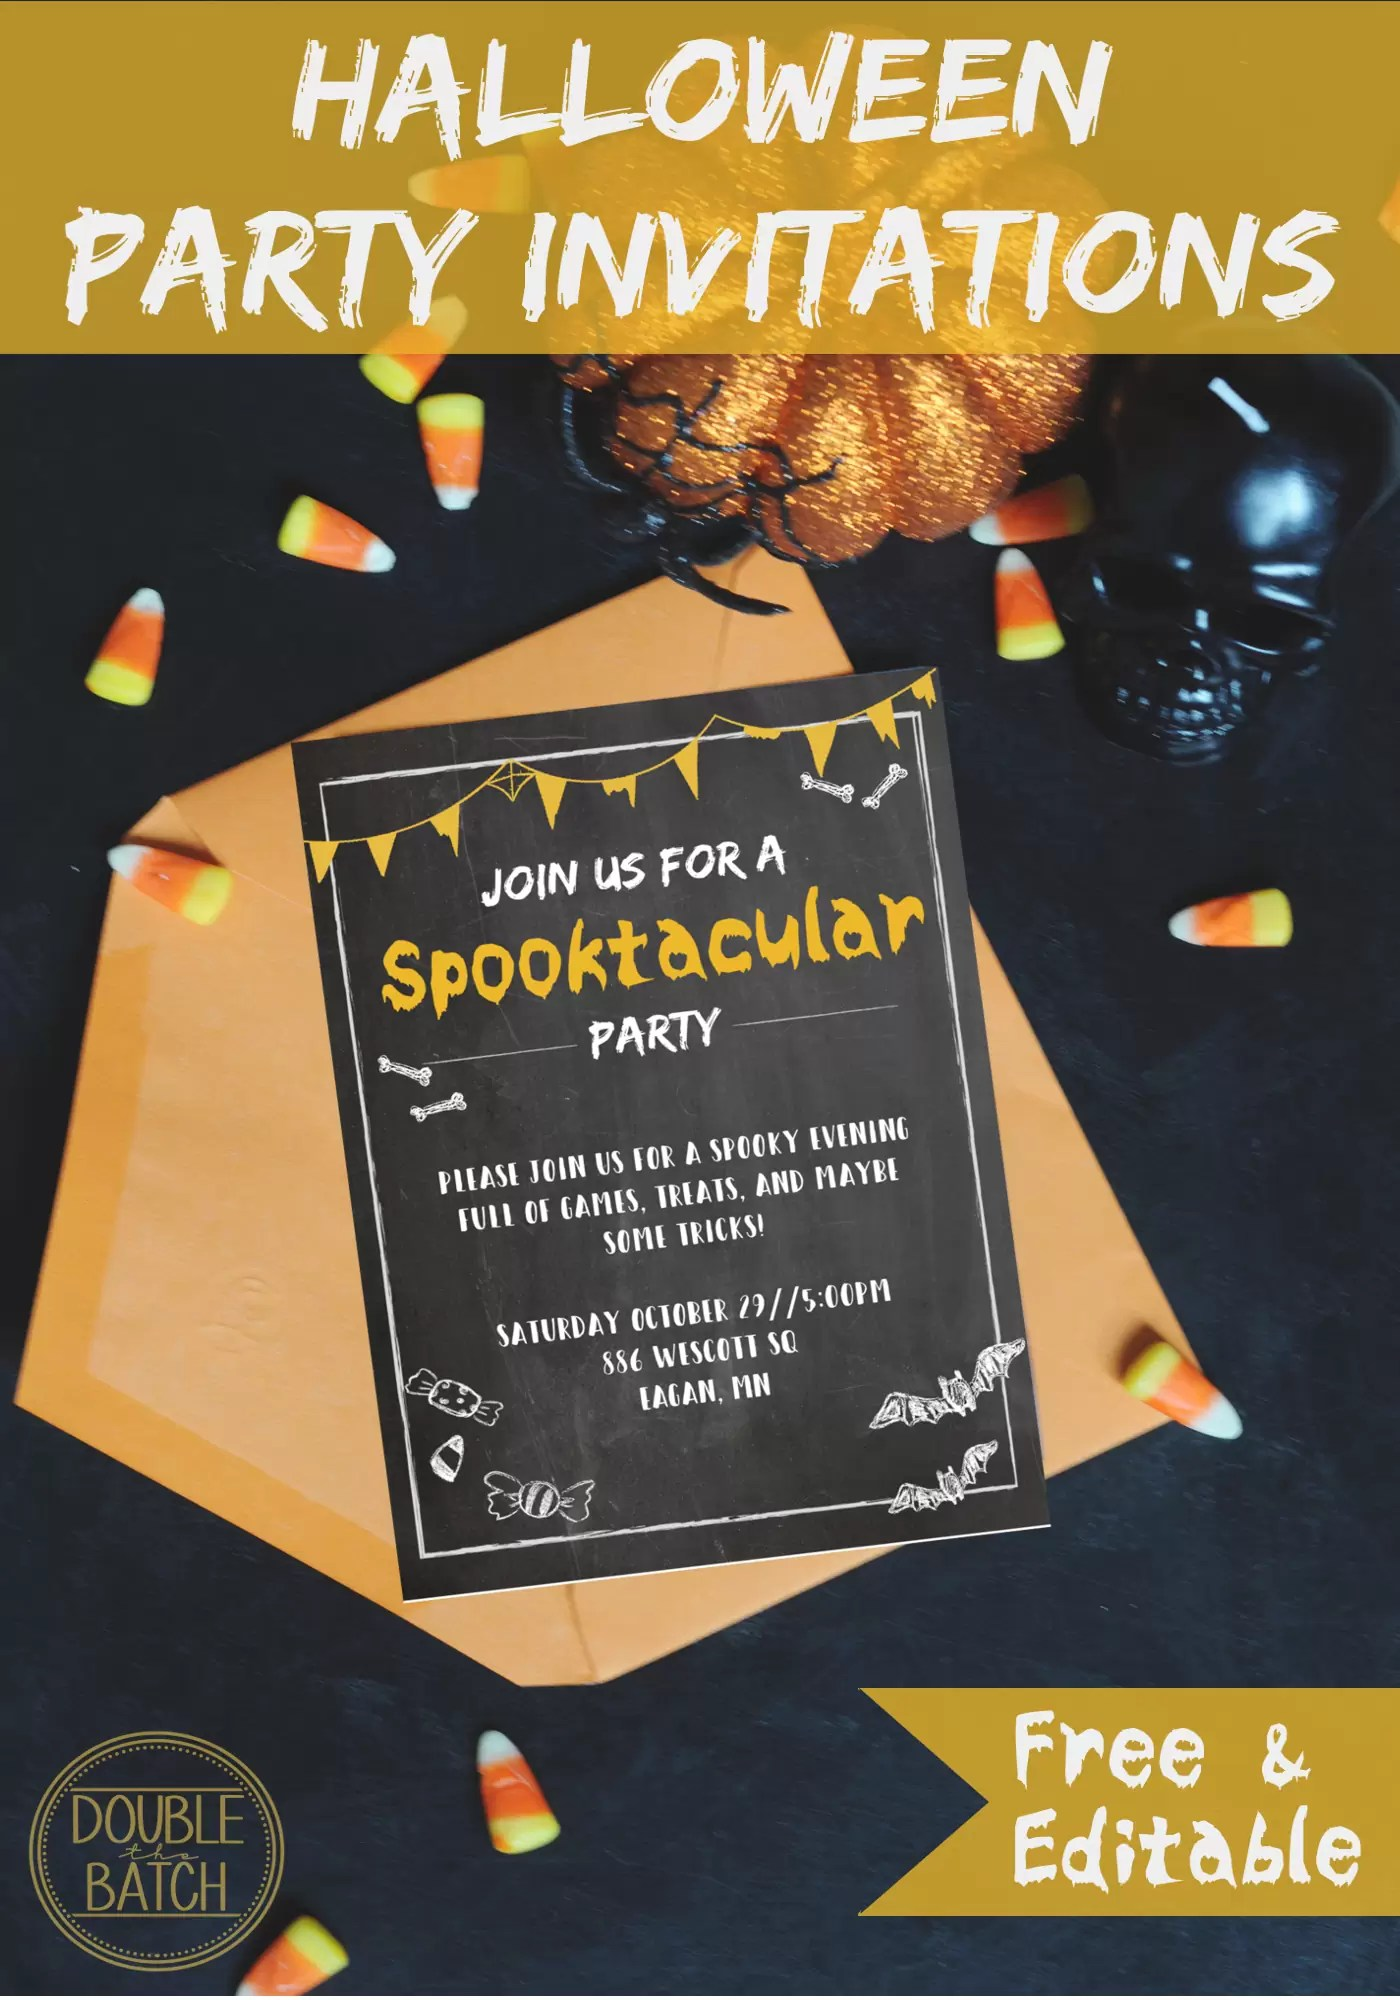 If you're looking for more Halloween freebies like these free Halloween party invitations for your shindig, check out my lists of free Halloween party games, Halloween music, and spooky Halloween sounds. It makes it easy to make your Halloween party the best for less.